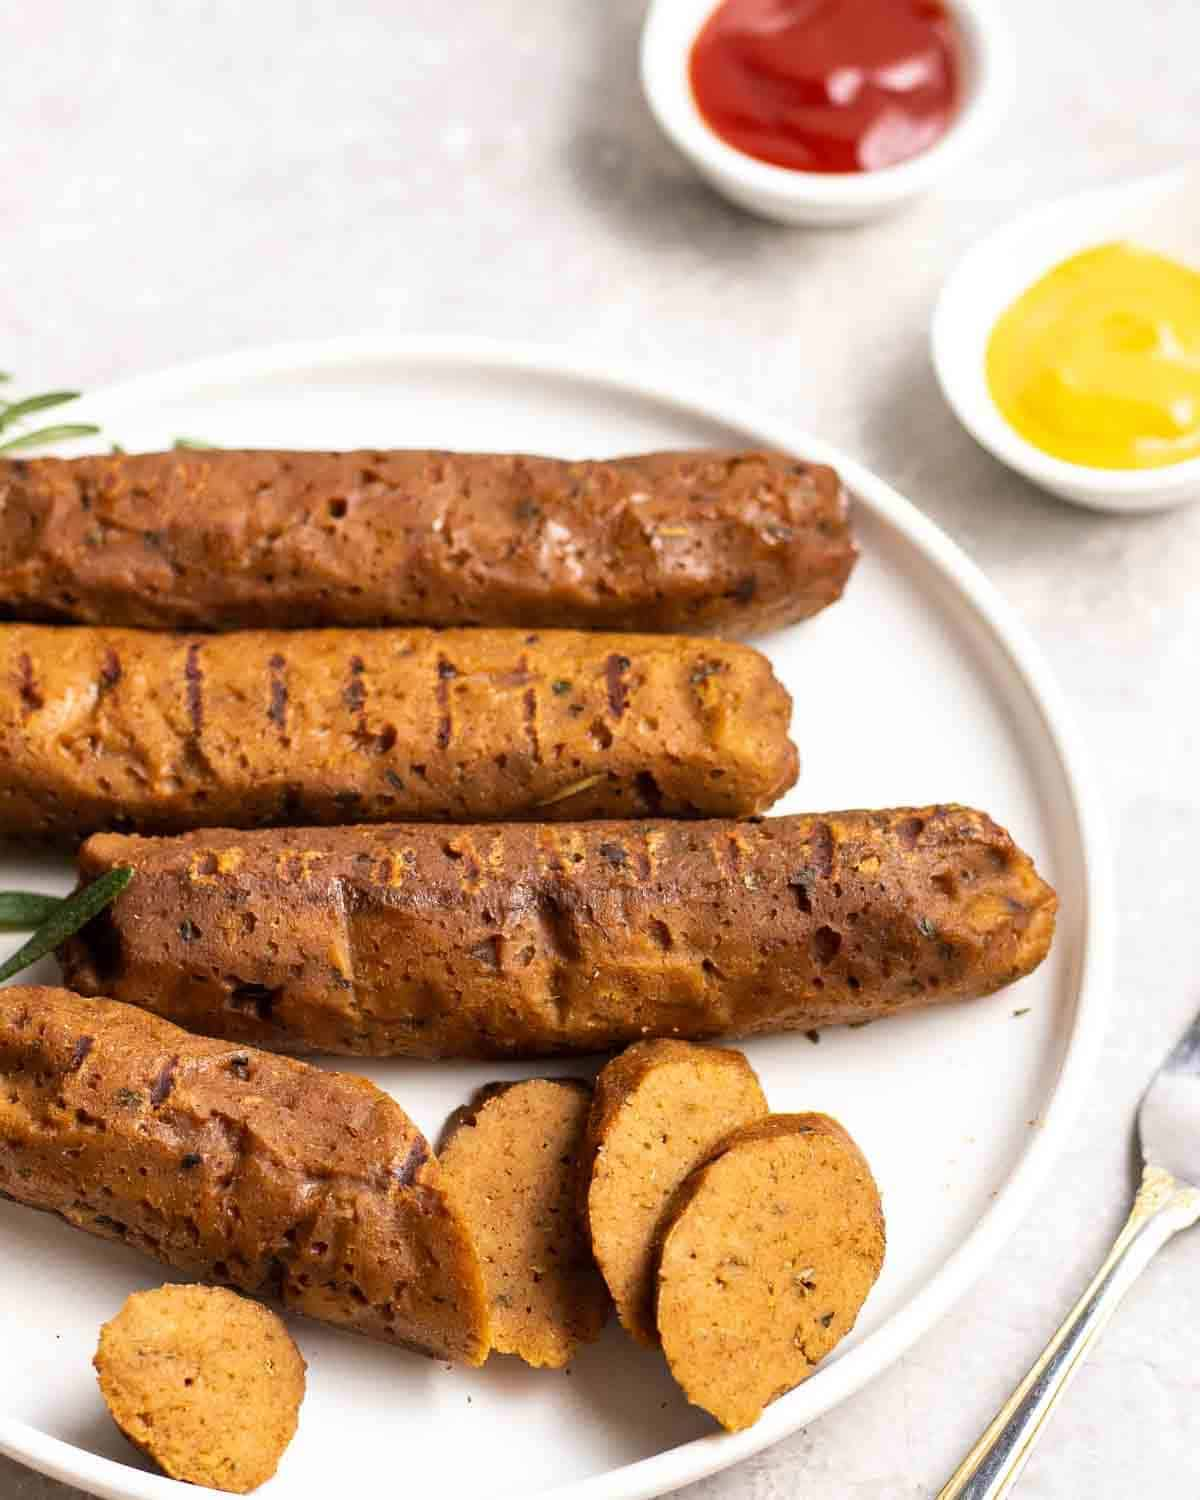 4 seitan sausages on a plate with the first one partially sliced.